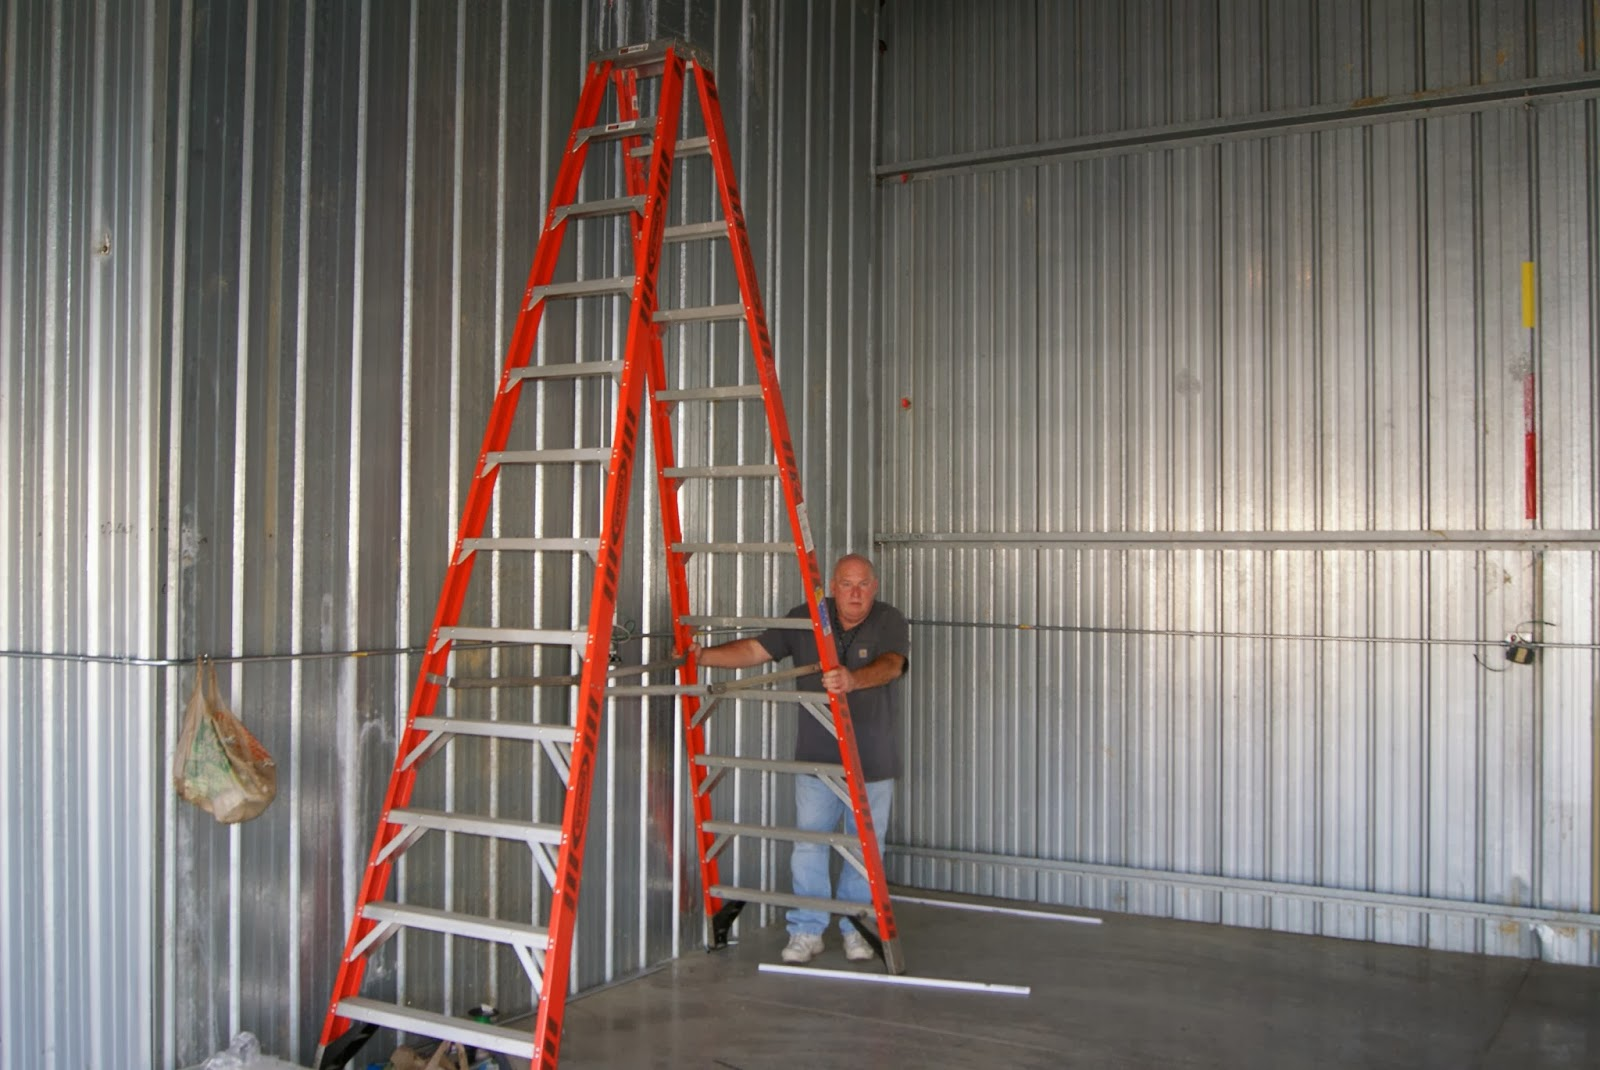 16 Foot Ladder Home Depot